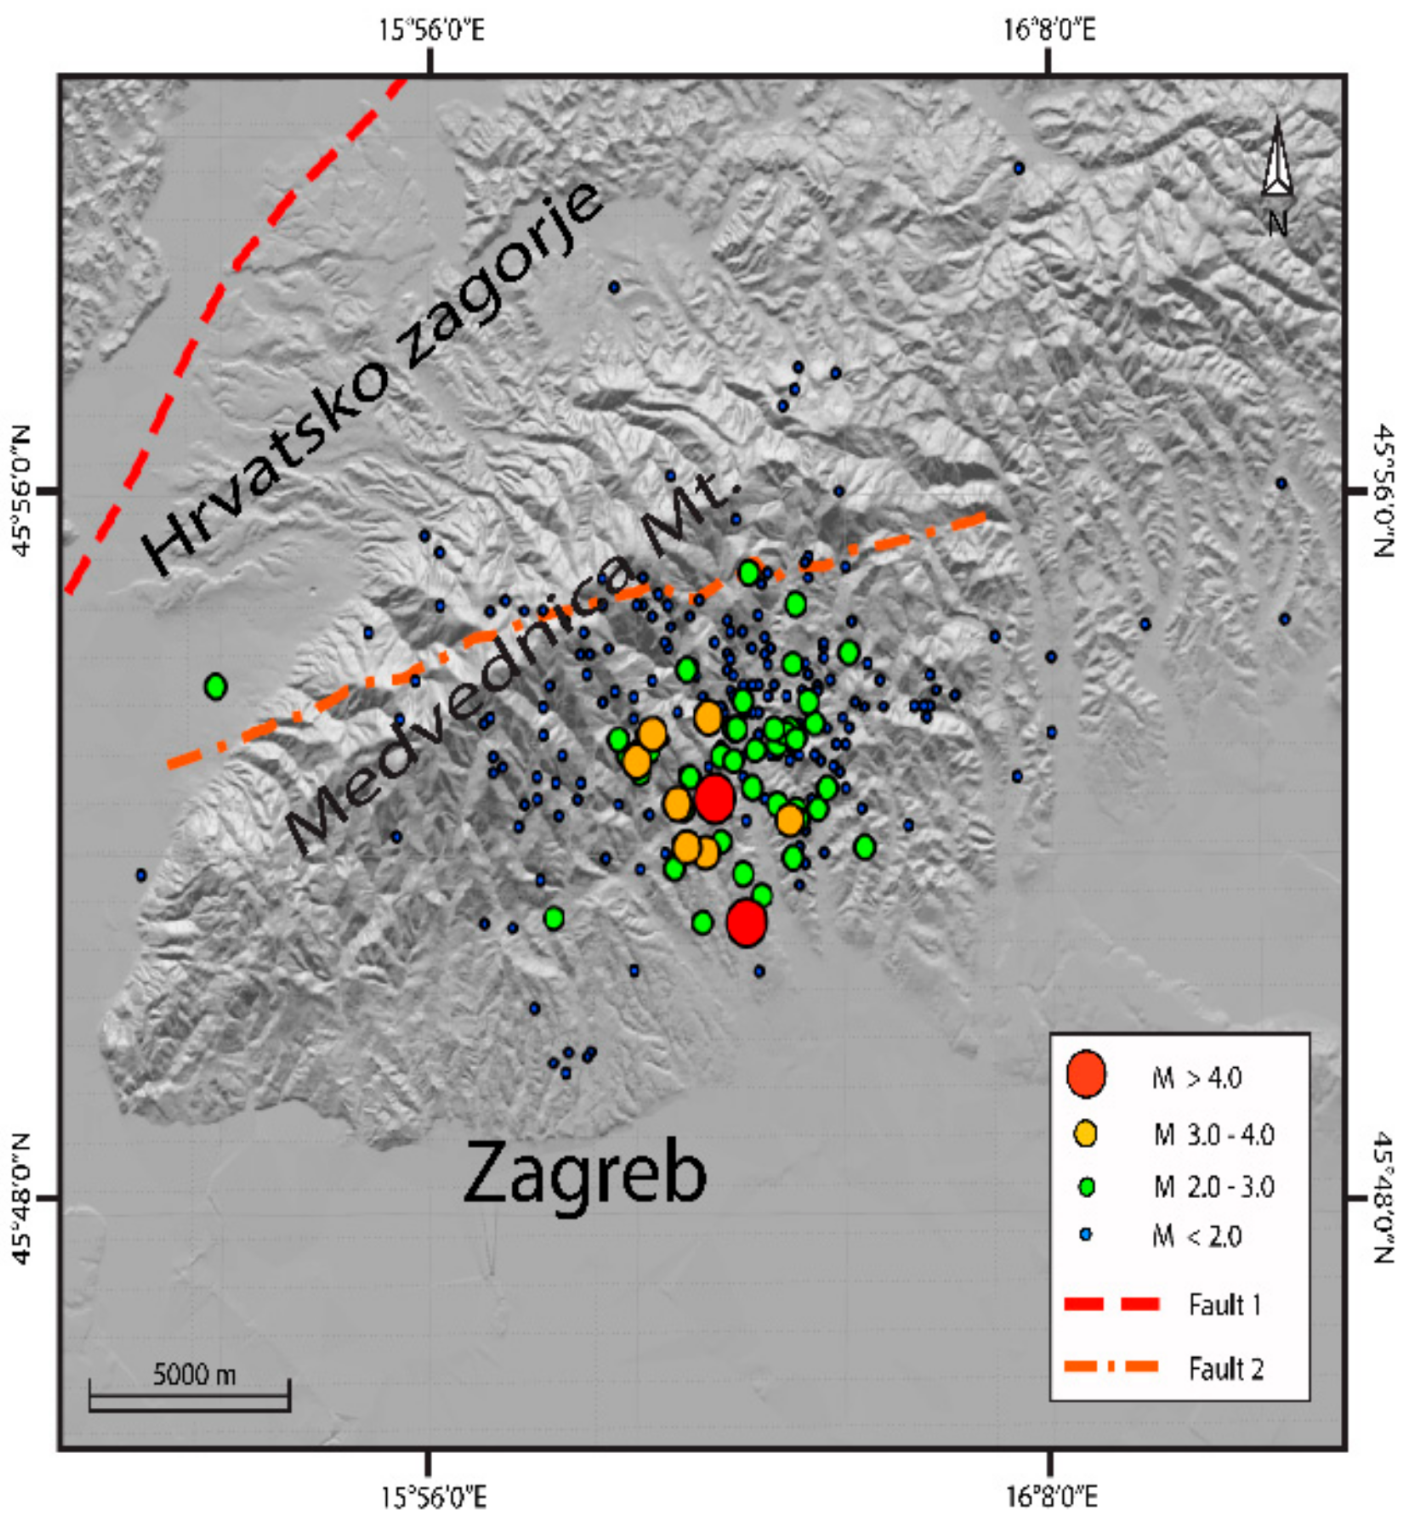 Geosciences Free Full Text The Zagreb Croatia M5 5 Earthquake On 22 March 2020 Html